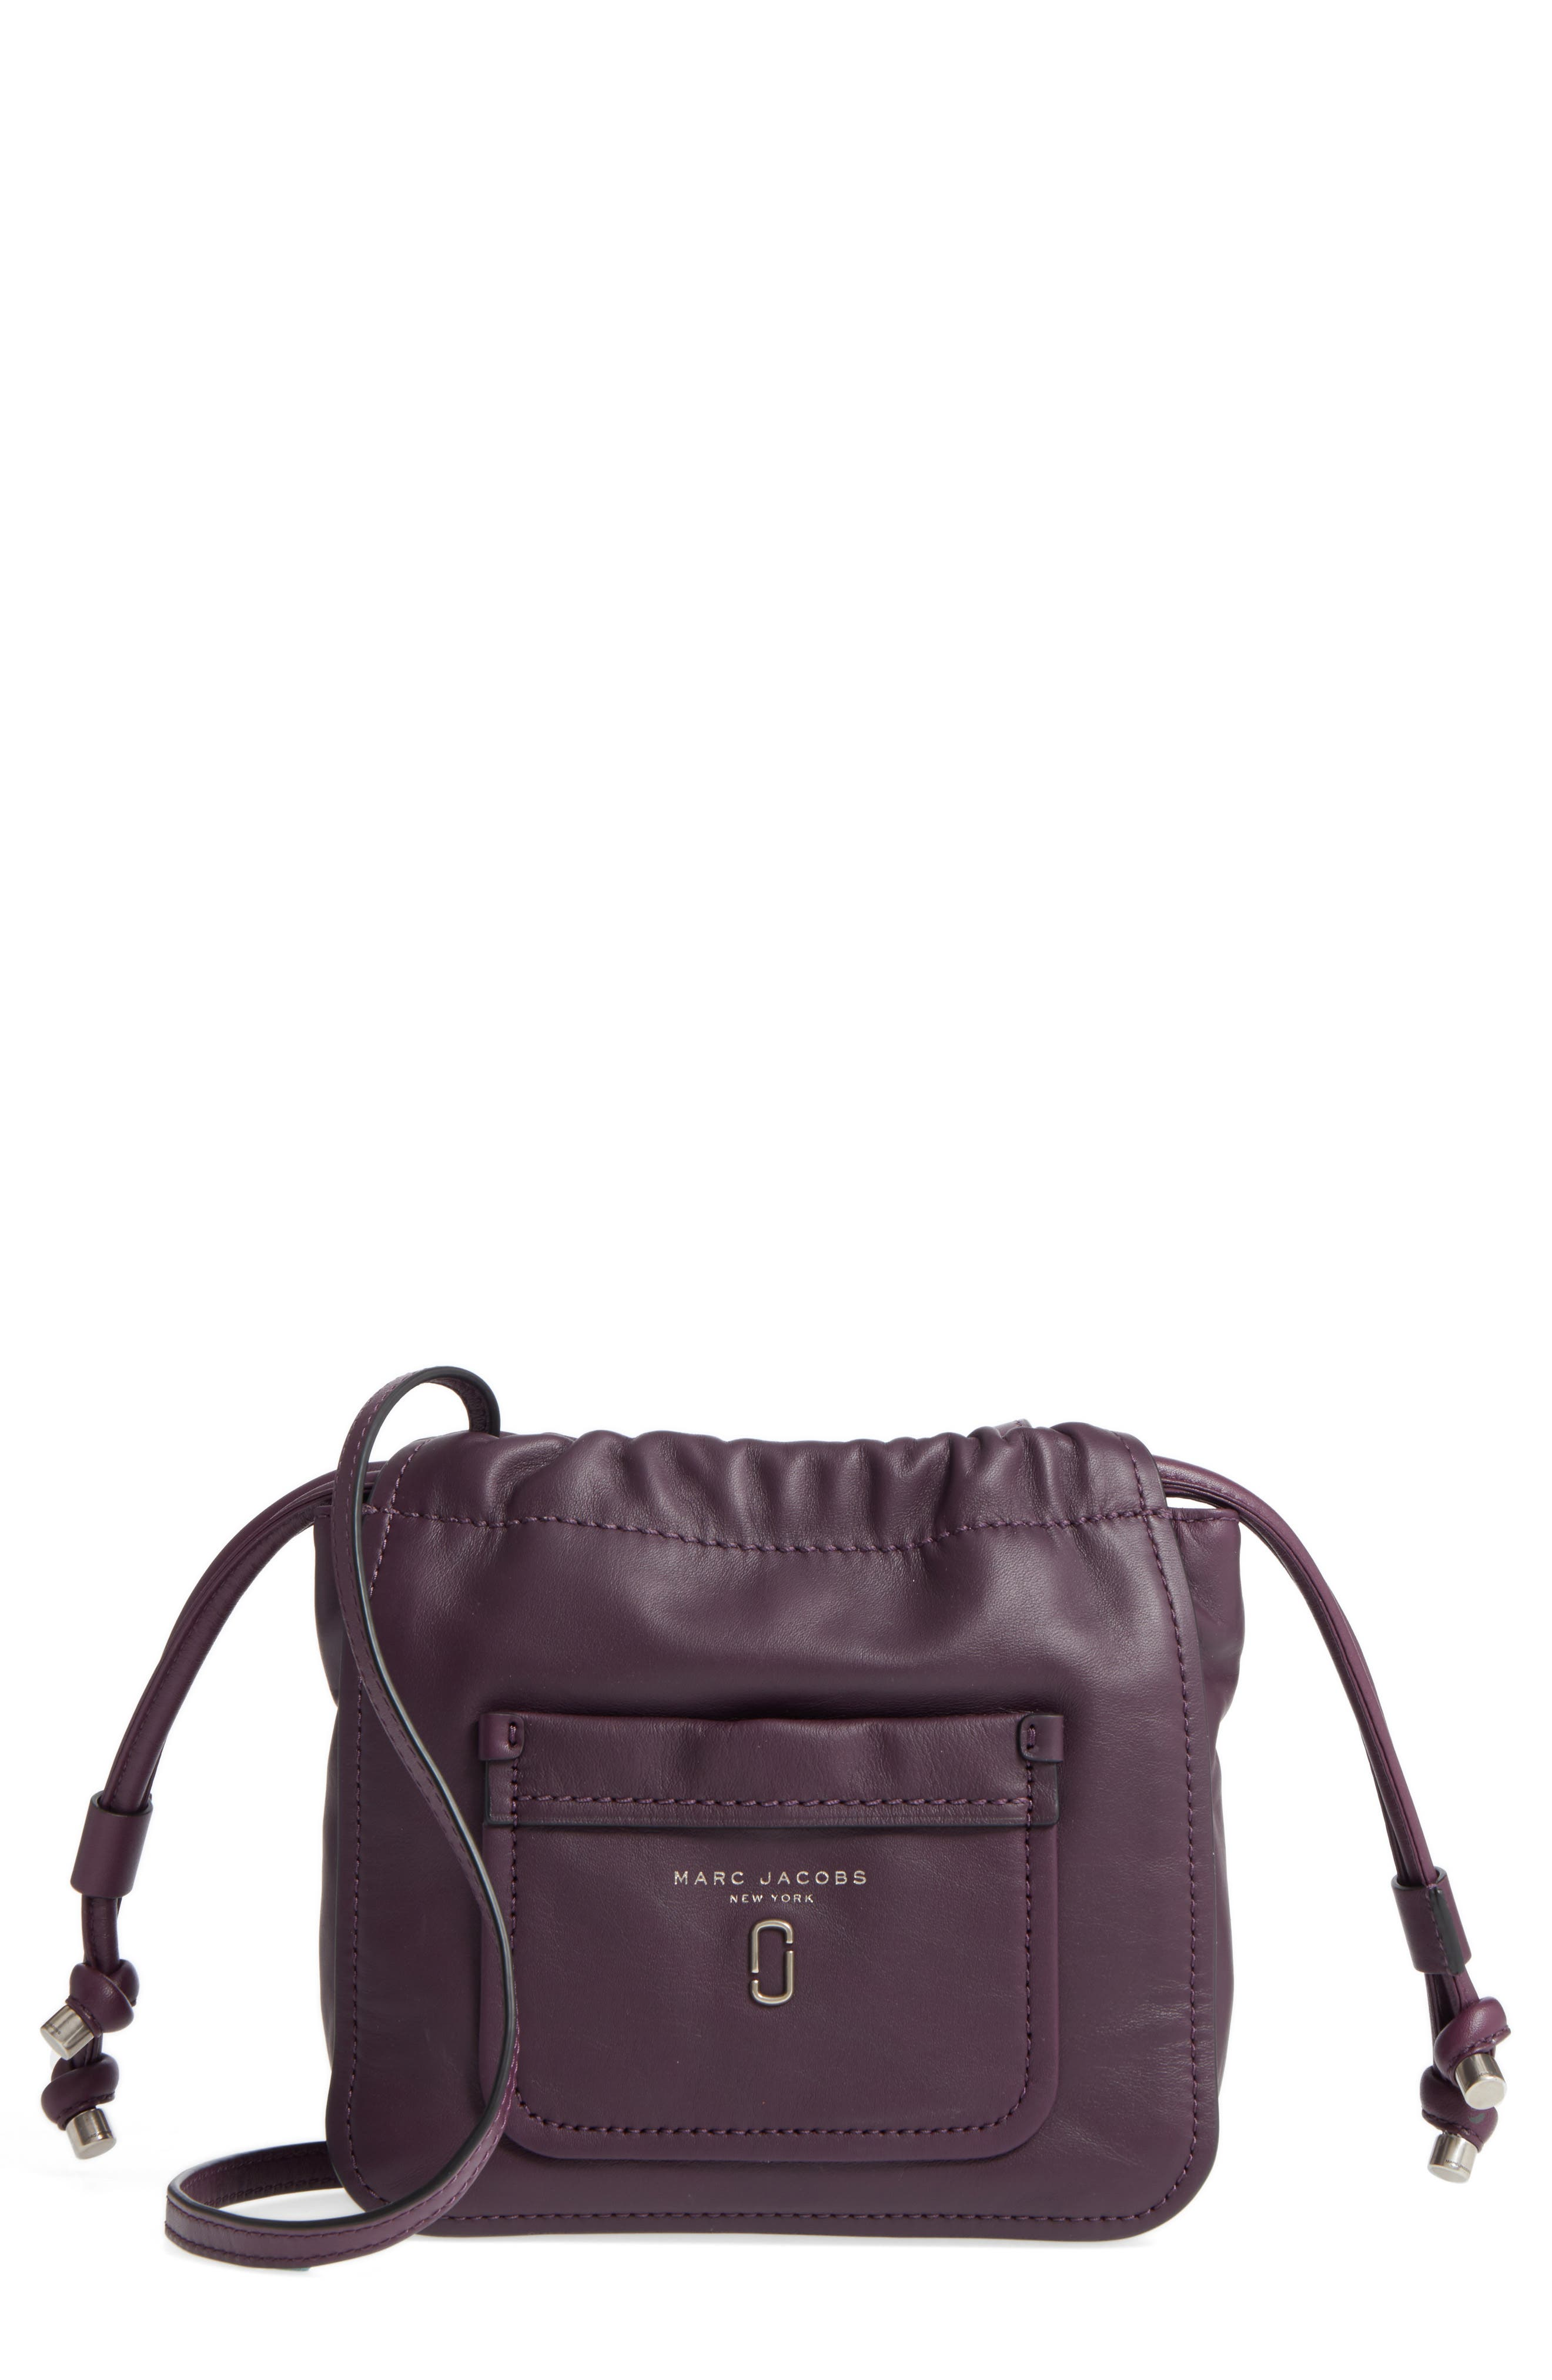 Alternate Image 1 Selected - MARC JACOBS Tied Up Leather Crossbody Bag